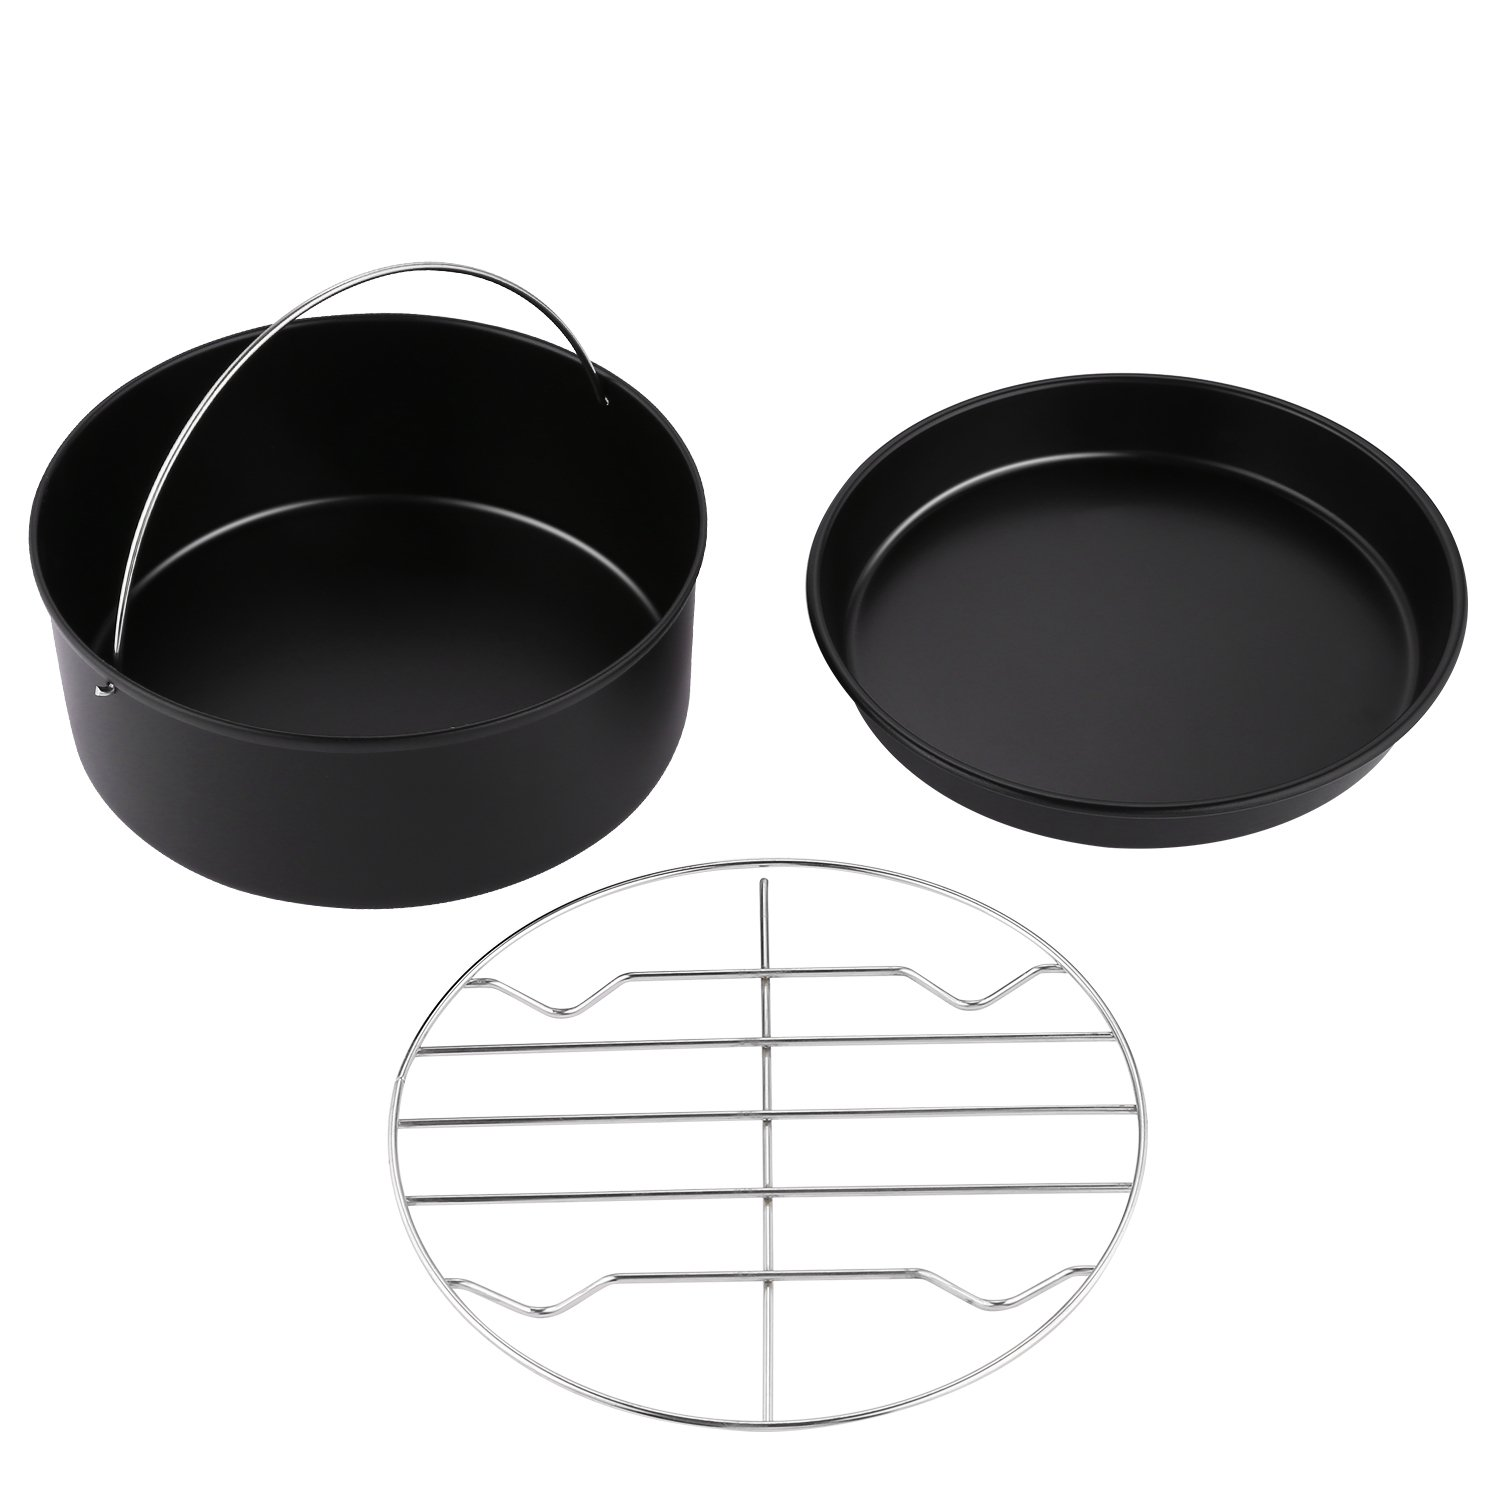 MeyKey Air Fryer Accessories 3pcs for fit All 5.3QT 5.8QT with 7 inch Diameter